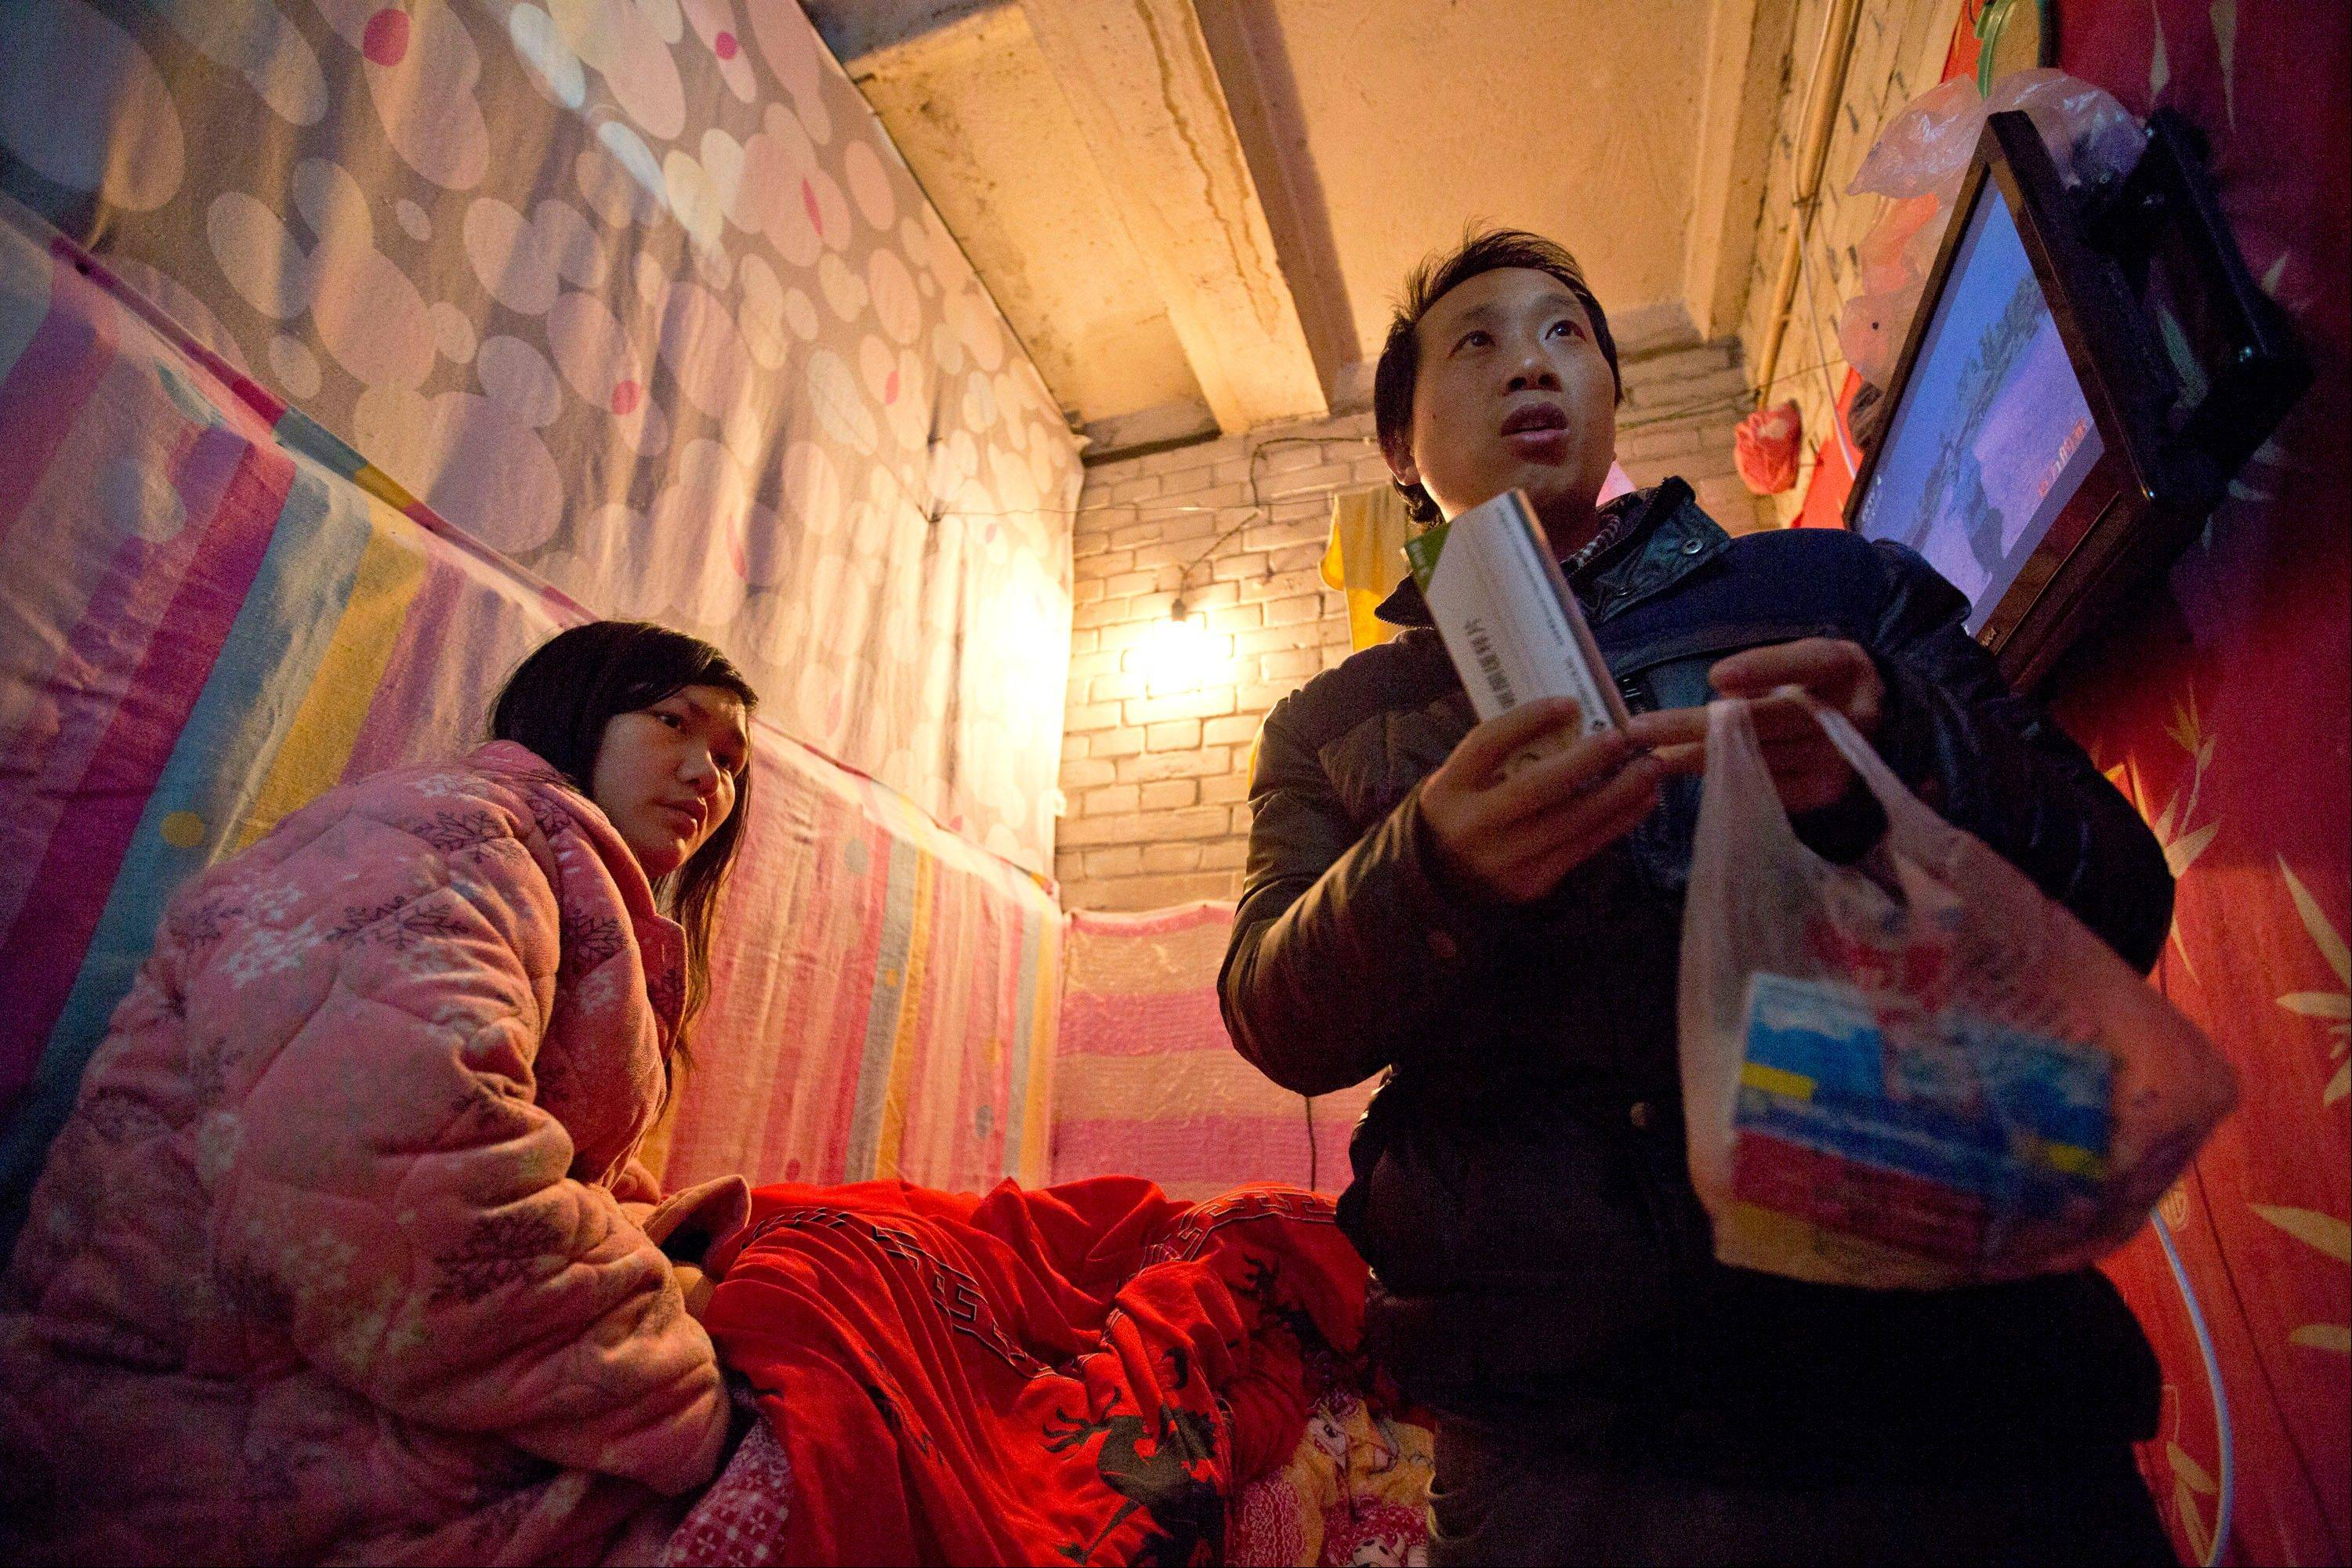 Wu Yongyuan, right, shows medicines his wife Gong Qifeng, left, takes to control her schizophrenia symptoms. When Gong�s mind is clear, she can recall how she begged for mercy as several people pinned her down and drove a syringe of labor-inducing drugs into her stomach when she was seven months pregnant.